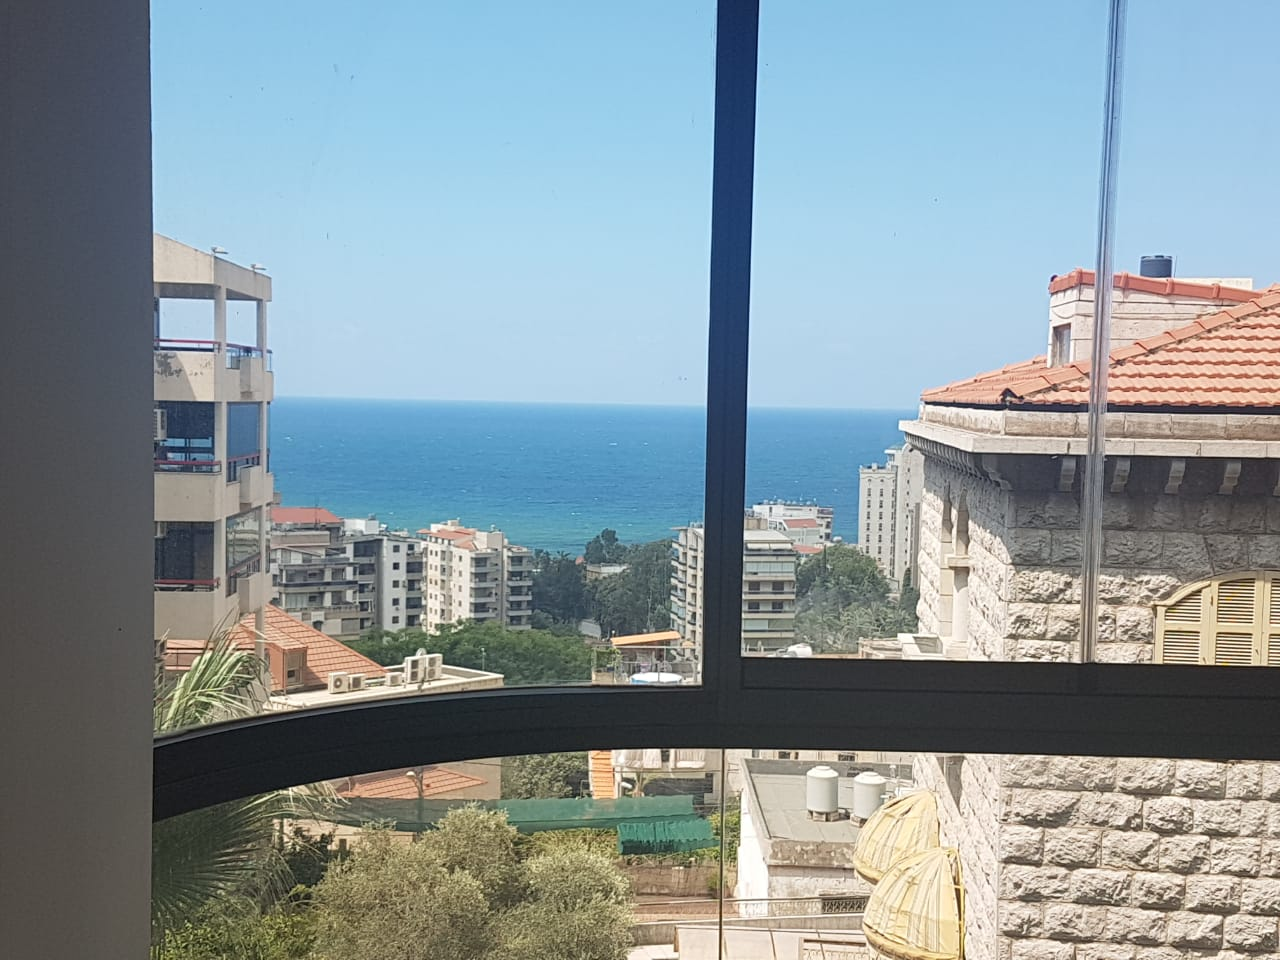 Apartment for rent in Haret Sakher, Jounieh, Lebanon, real estate in Haret Sakher Jounieh Lebanon, buy sell properties in Harte sakher jounieh Lebanon